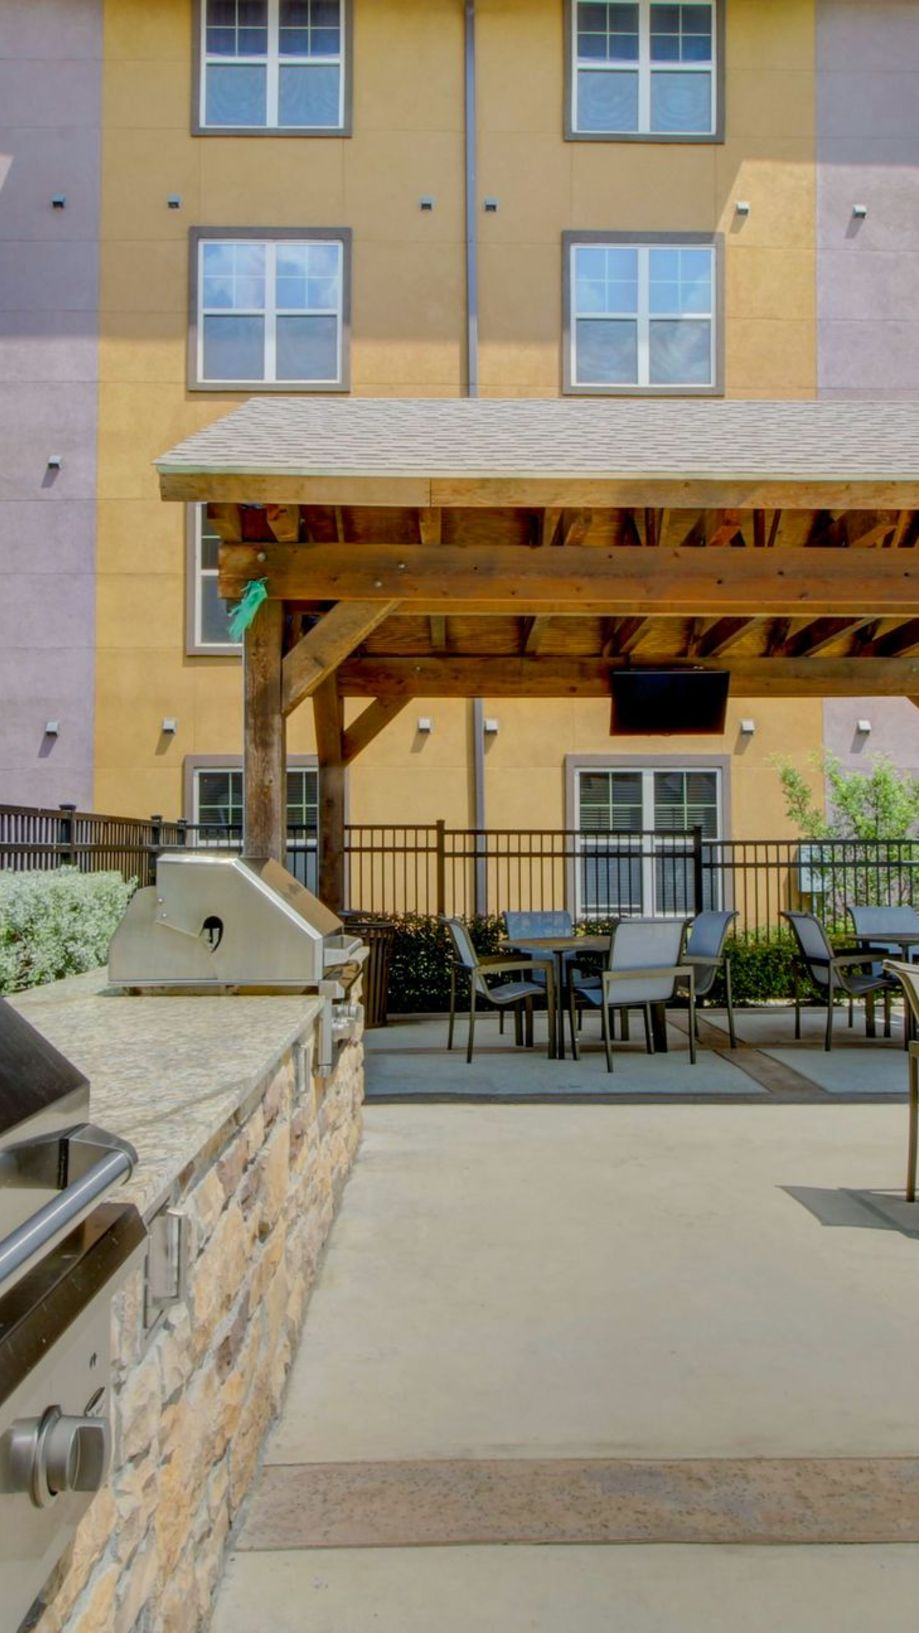 Astounding Apartments For Rent In Grapevine Tx Enclave At Grapevine Beutiful Home Inspiration Truamahrainfo